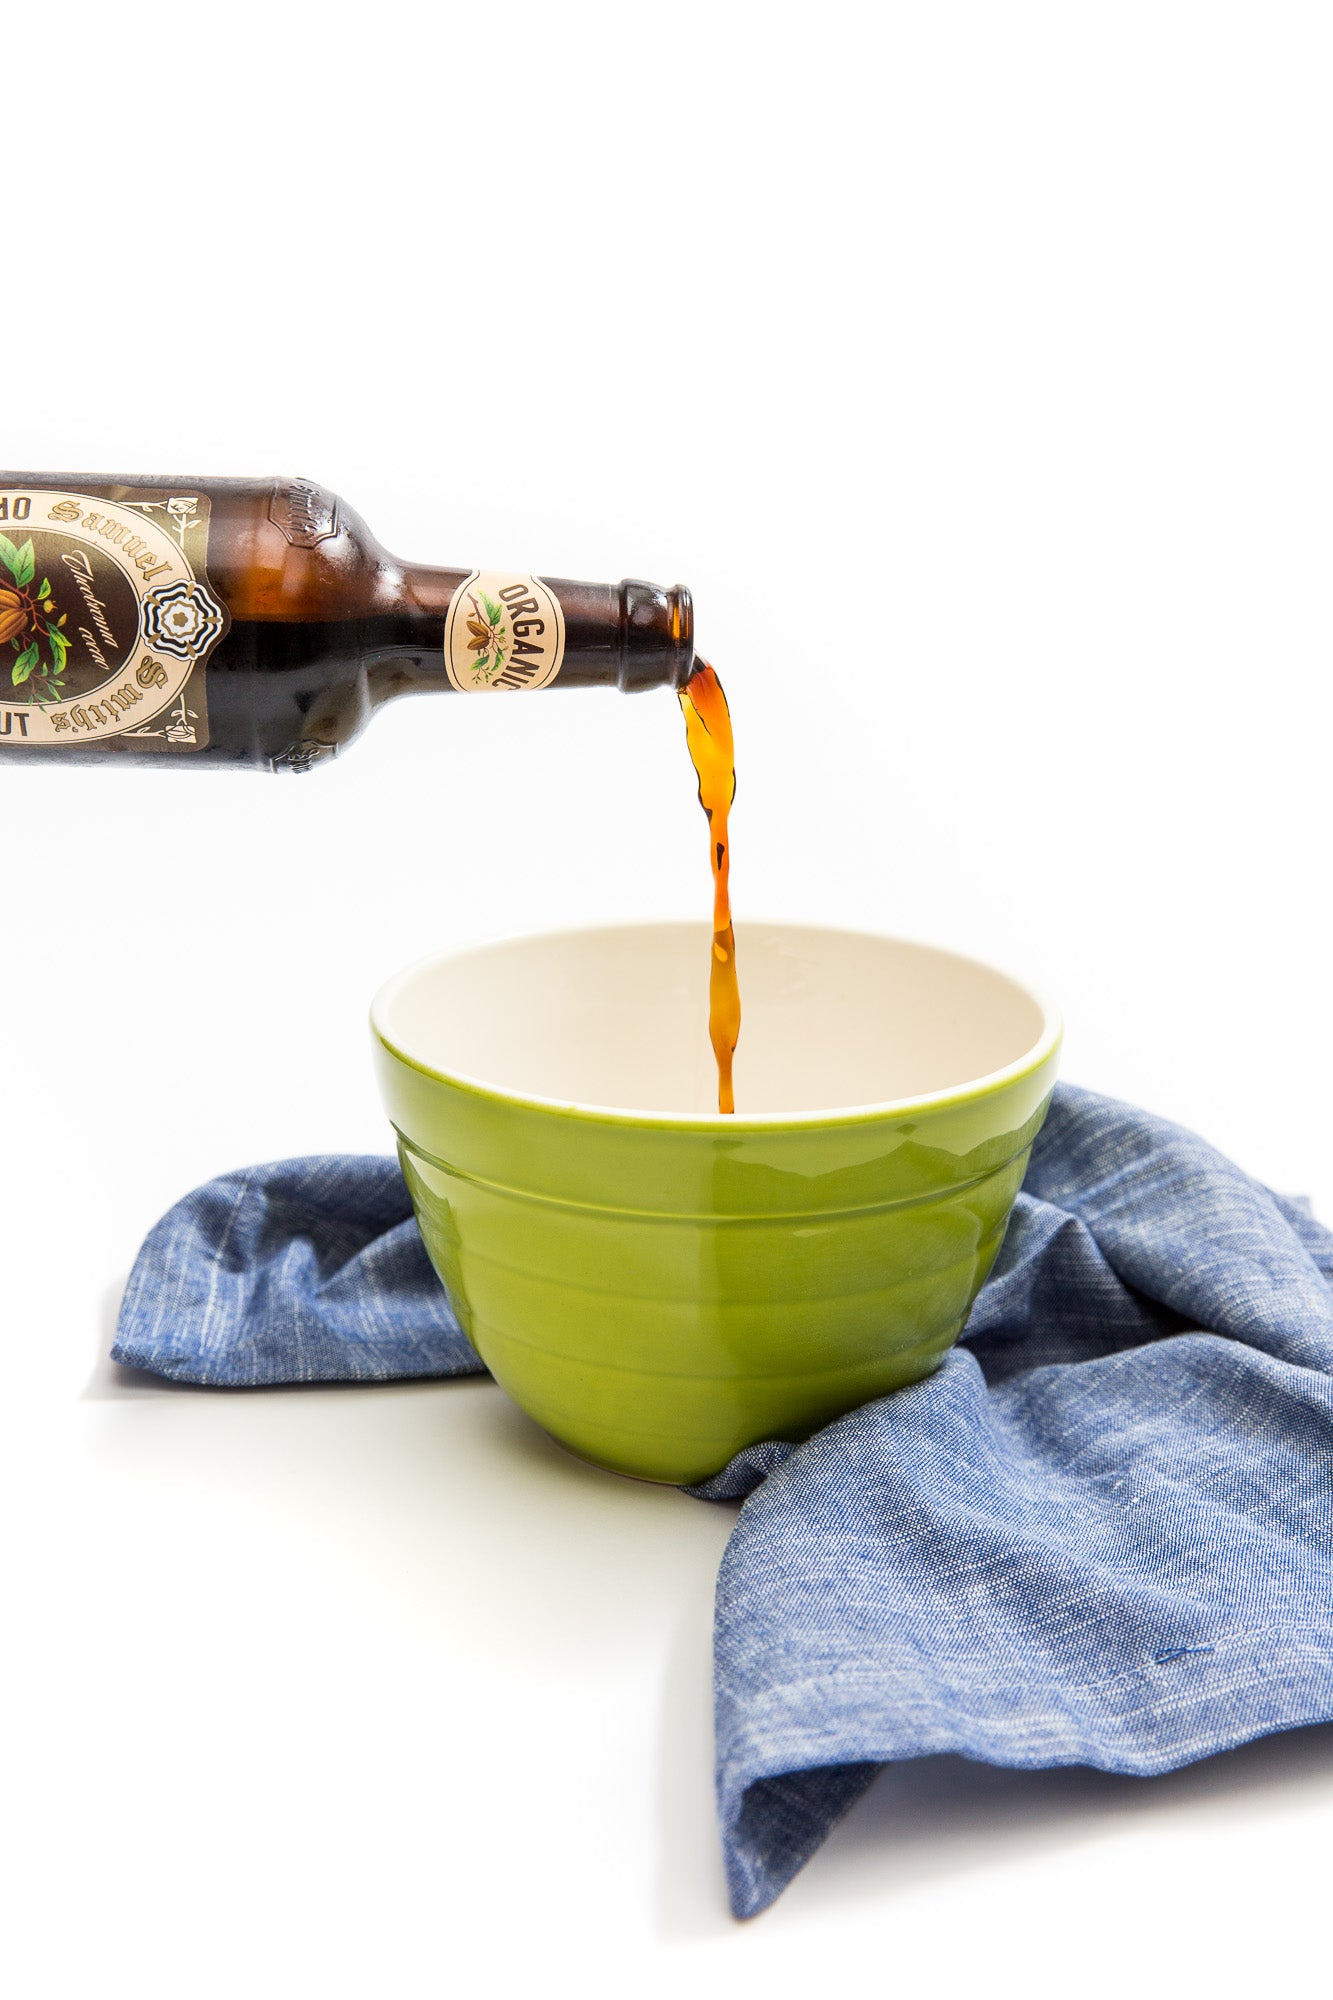 Image of a bottle of stout being poured into a green bowl next to a blue towel for Miss Jones Baking Co Double Chocolate Stout Pancakes Recipe